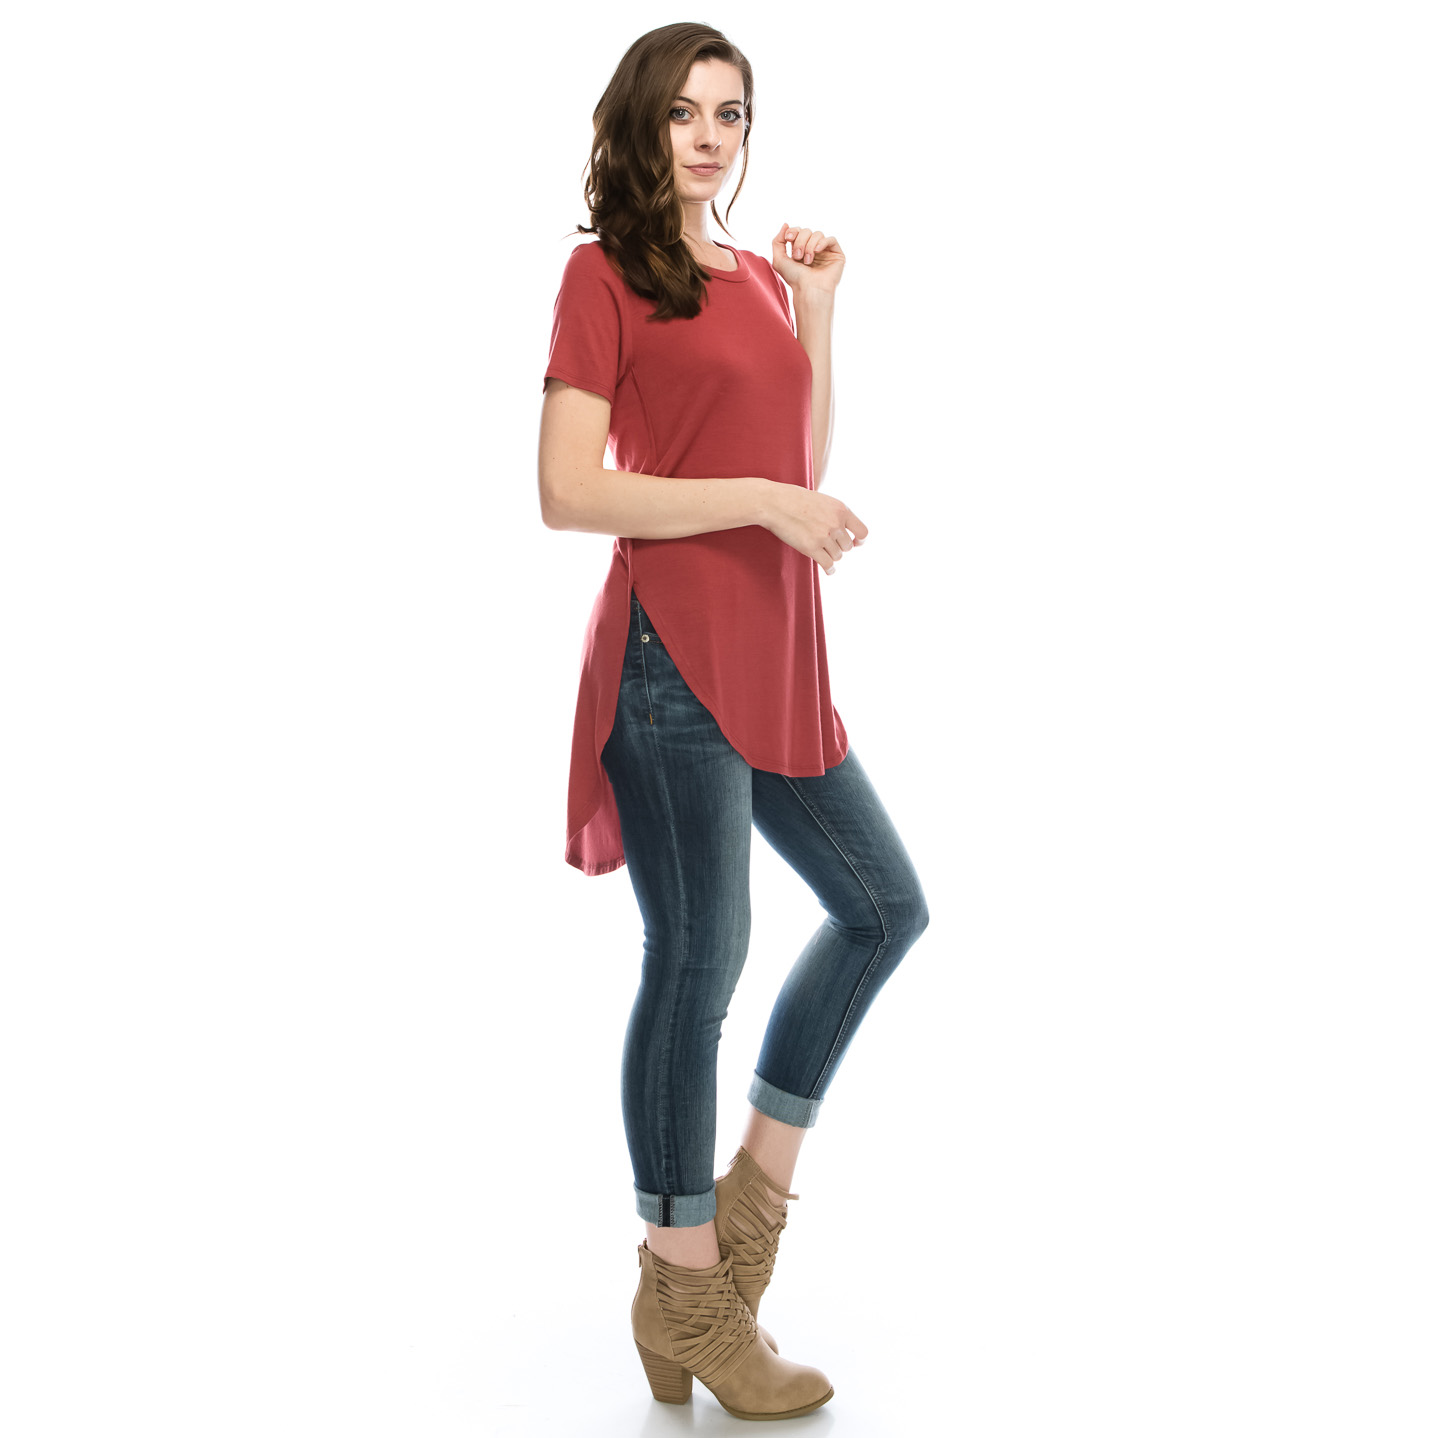 Women s High-Low Tunic Top (S-3X)